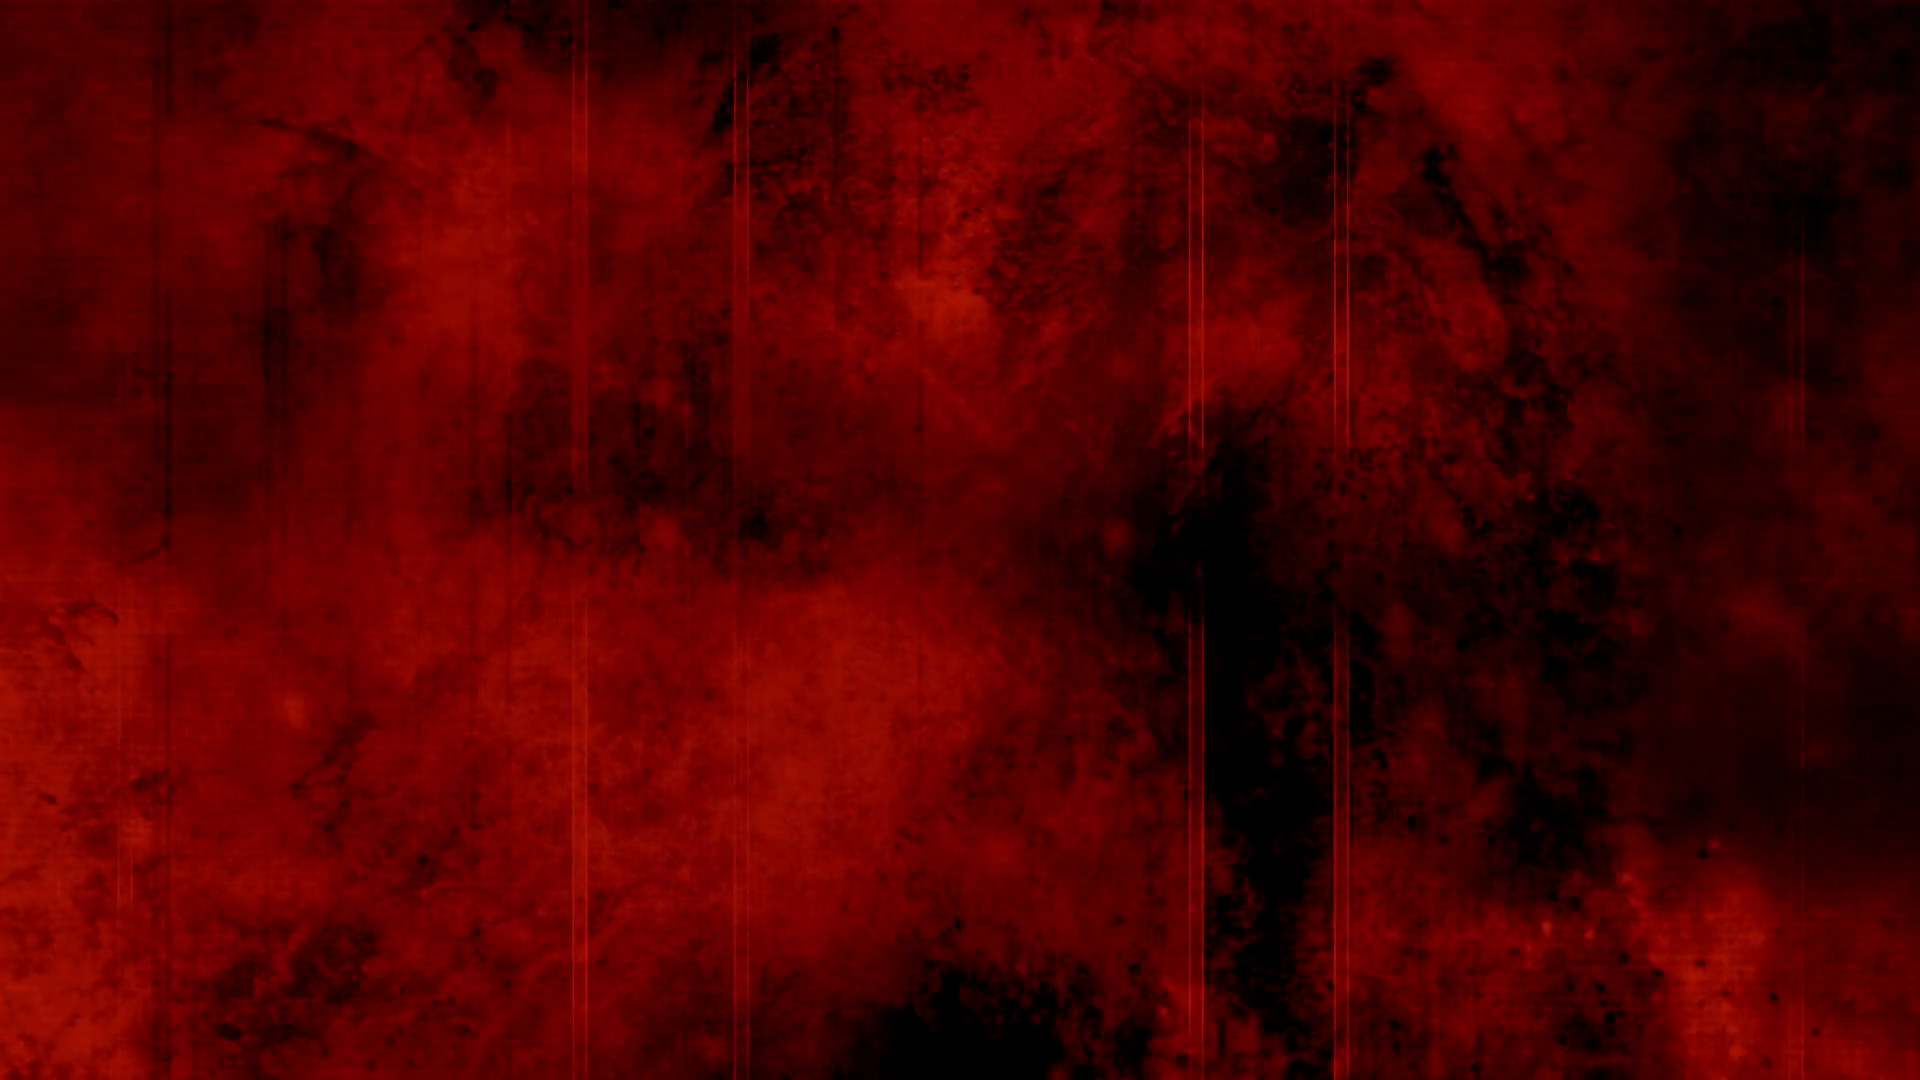 videoblocks red and black horror grunge overlay or background loop sxgnsqutuh thumbnail 1080 01